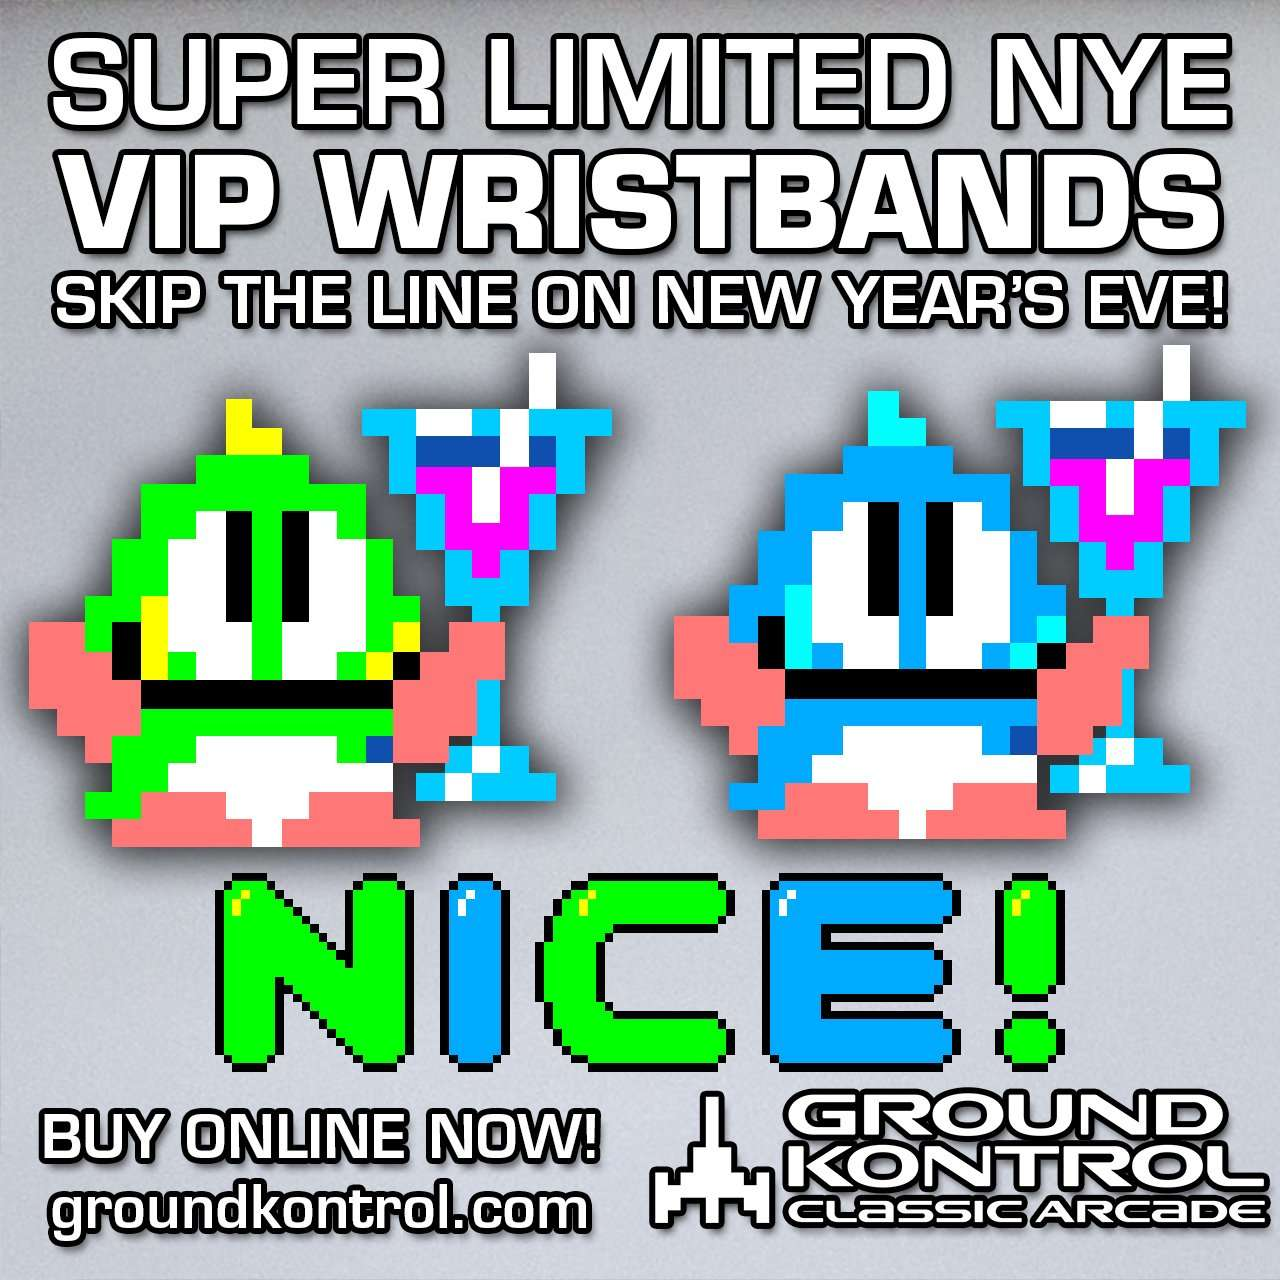 Image for Now Available: New Year's Eve 2016 VIP Wristbands – While They Last!